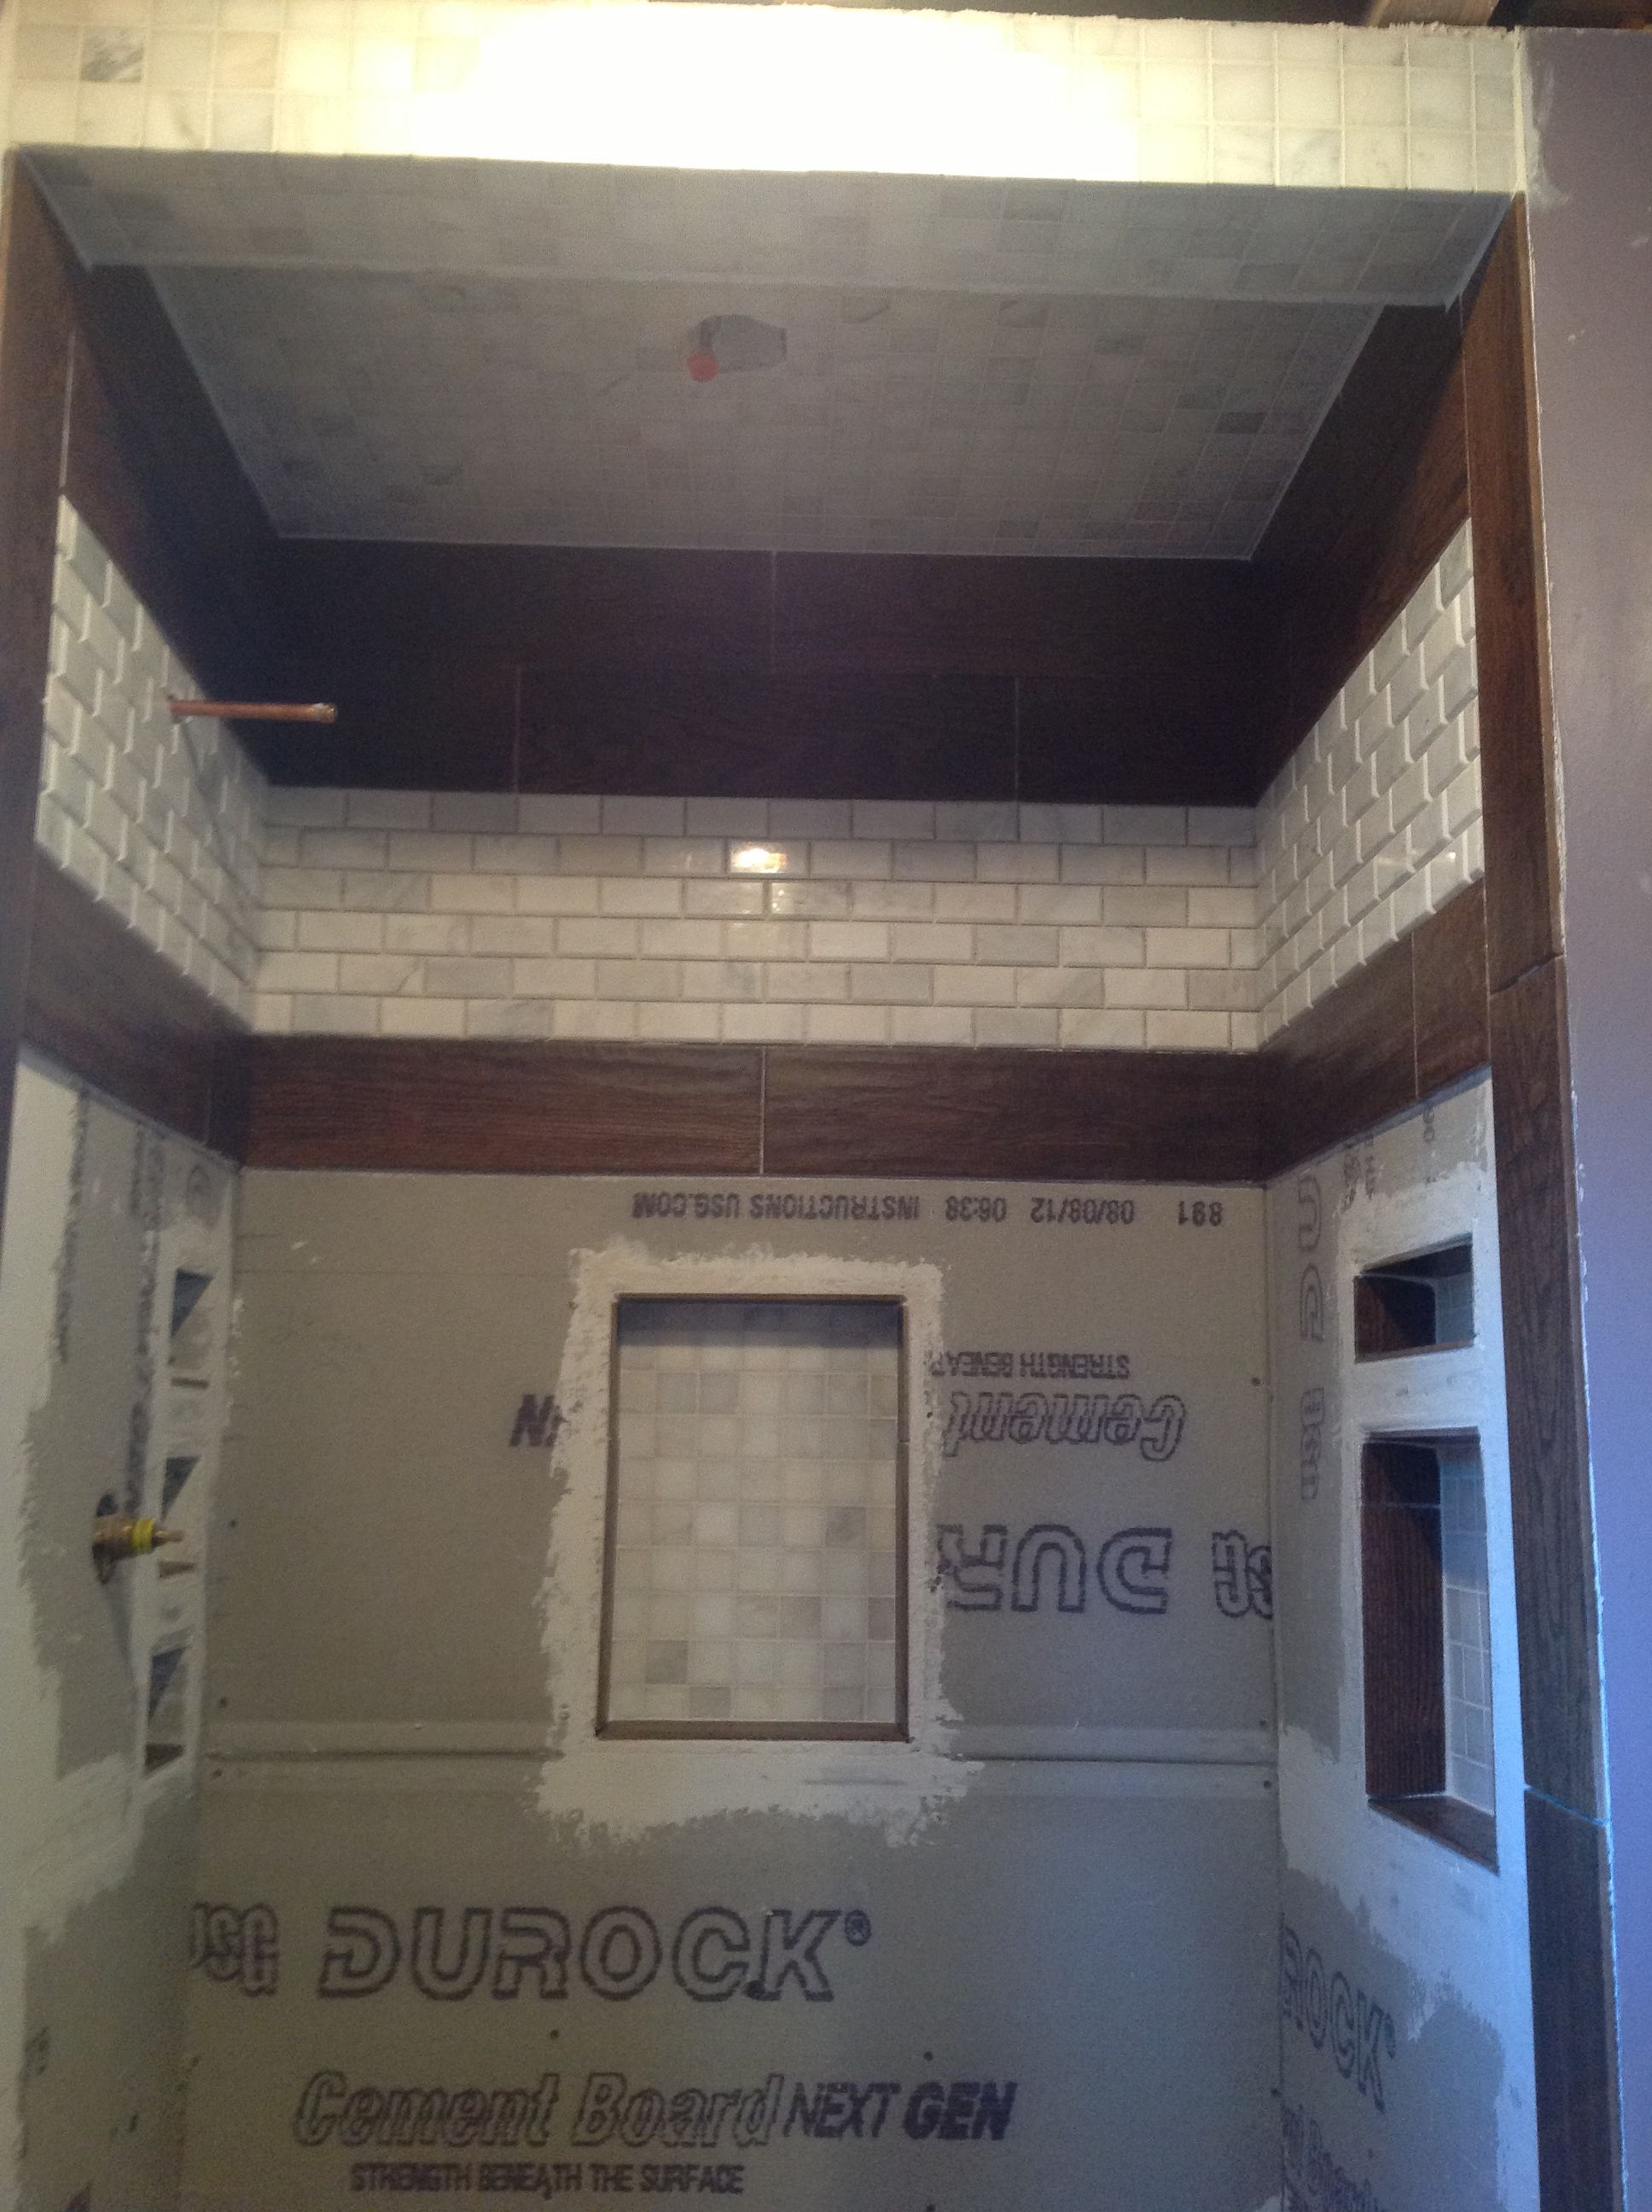 DIY shower stall | Rental House Remodel | Pinterest | Diy shower ...